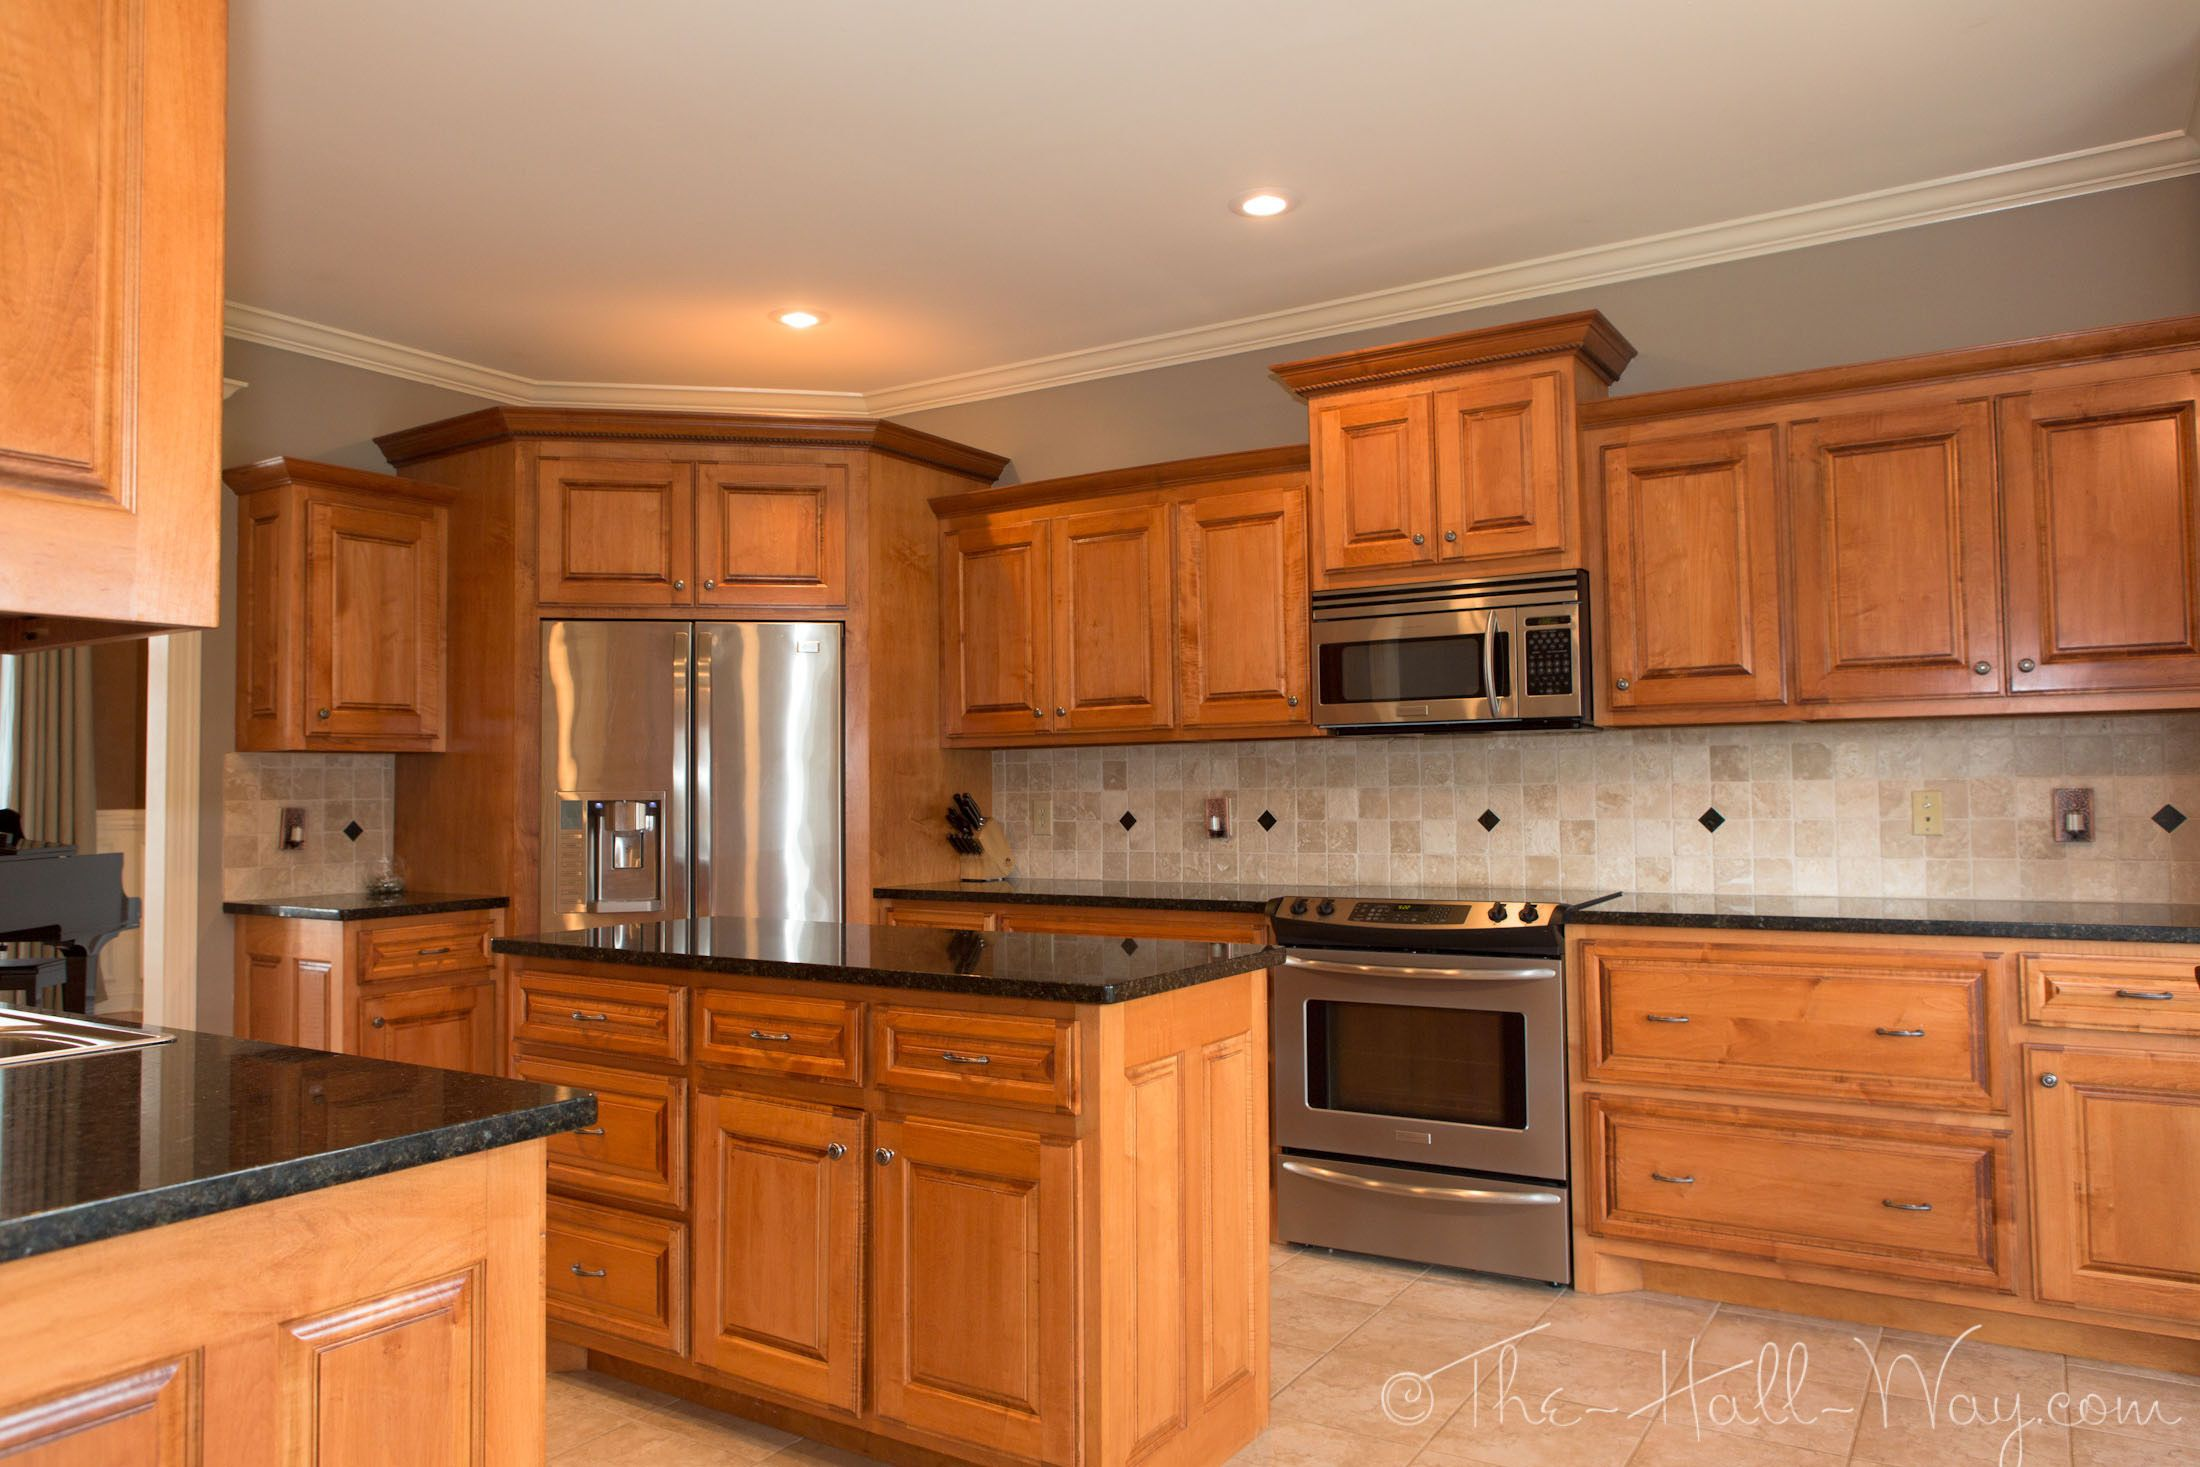 teal taupe oak kitchen | The kitchen had maple cabinets with a ...